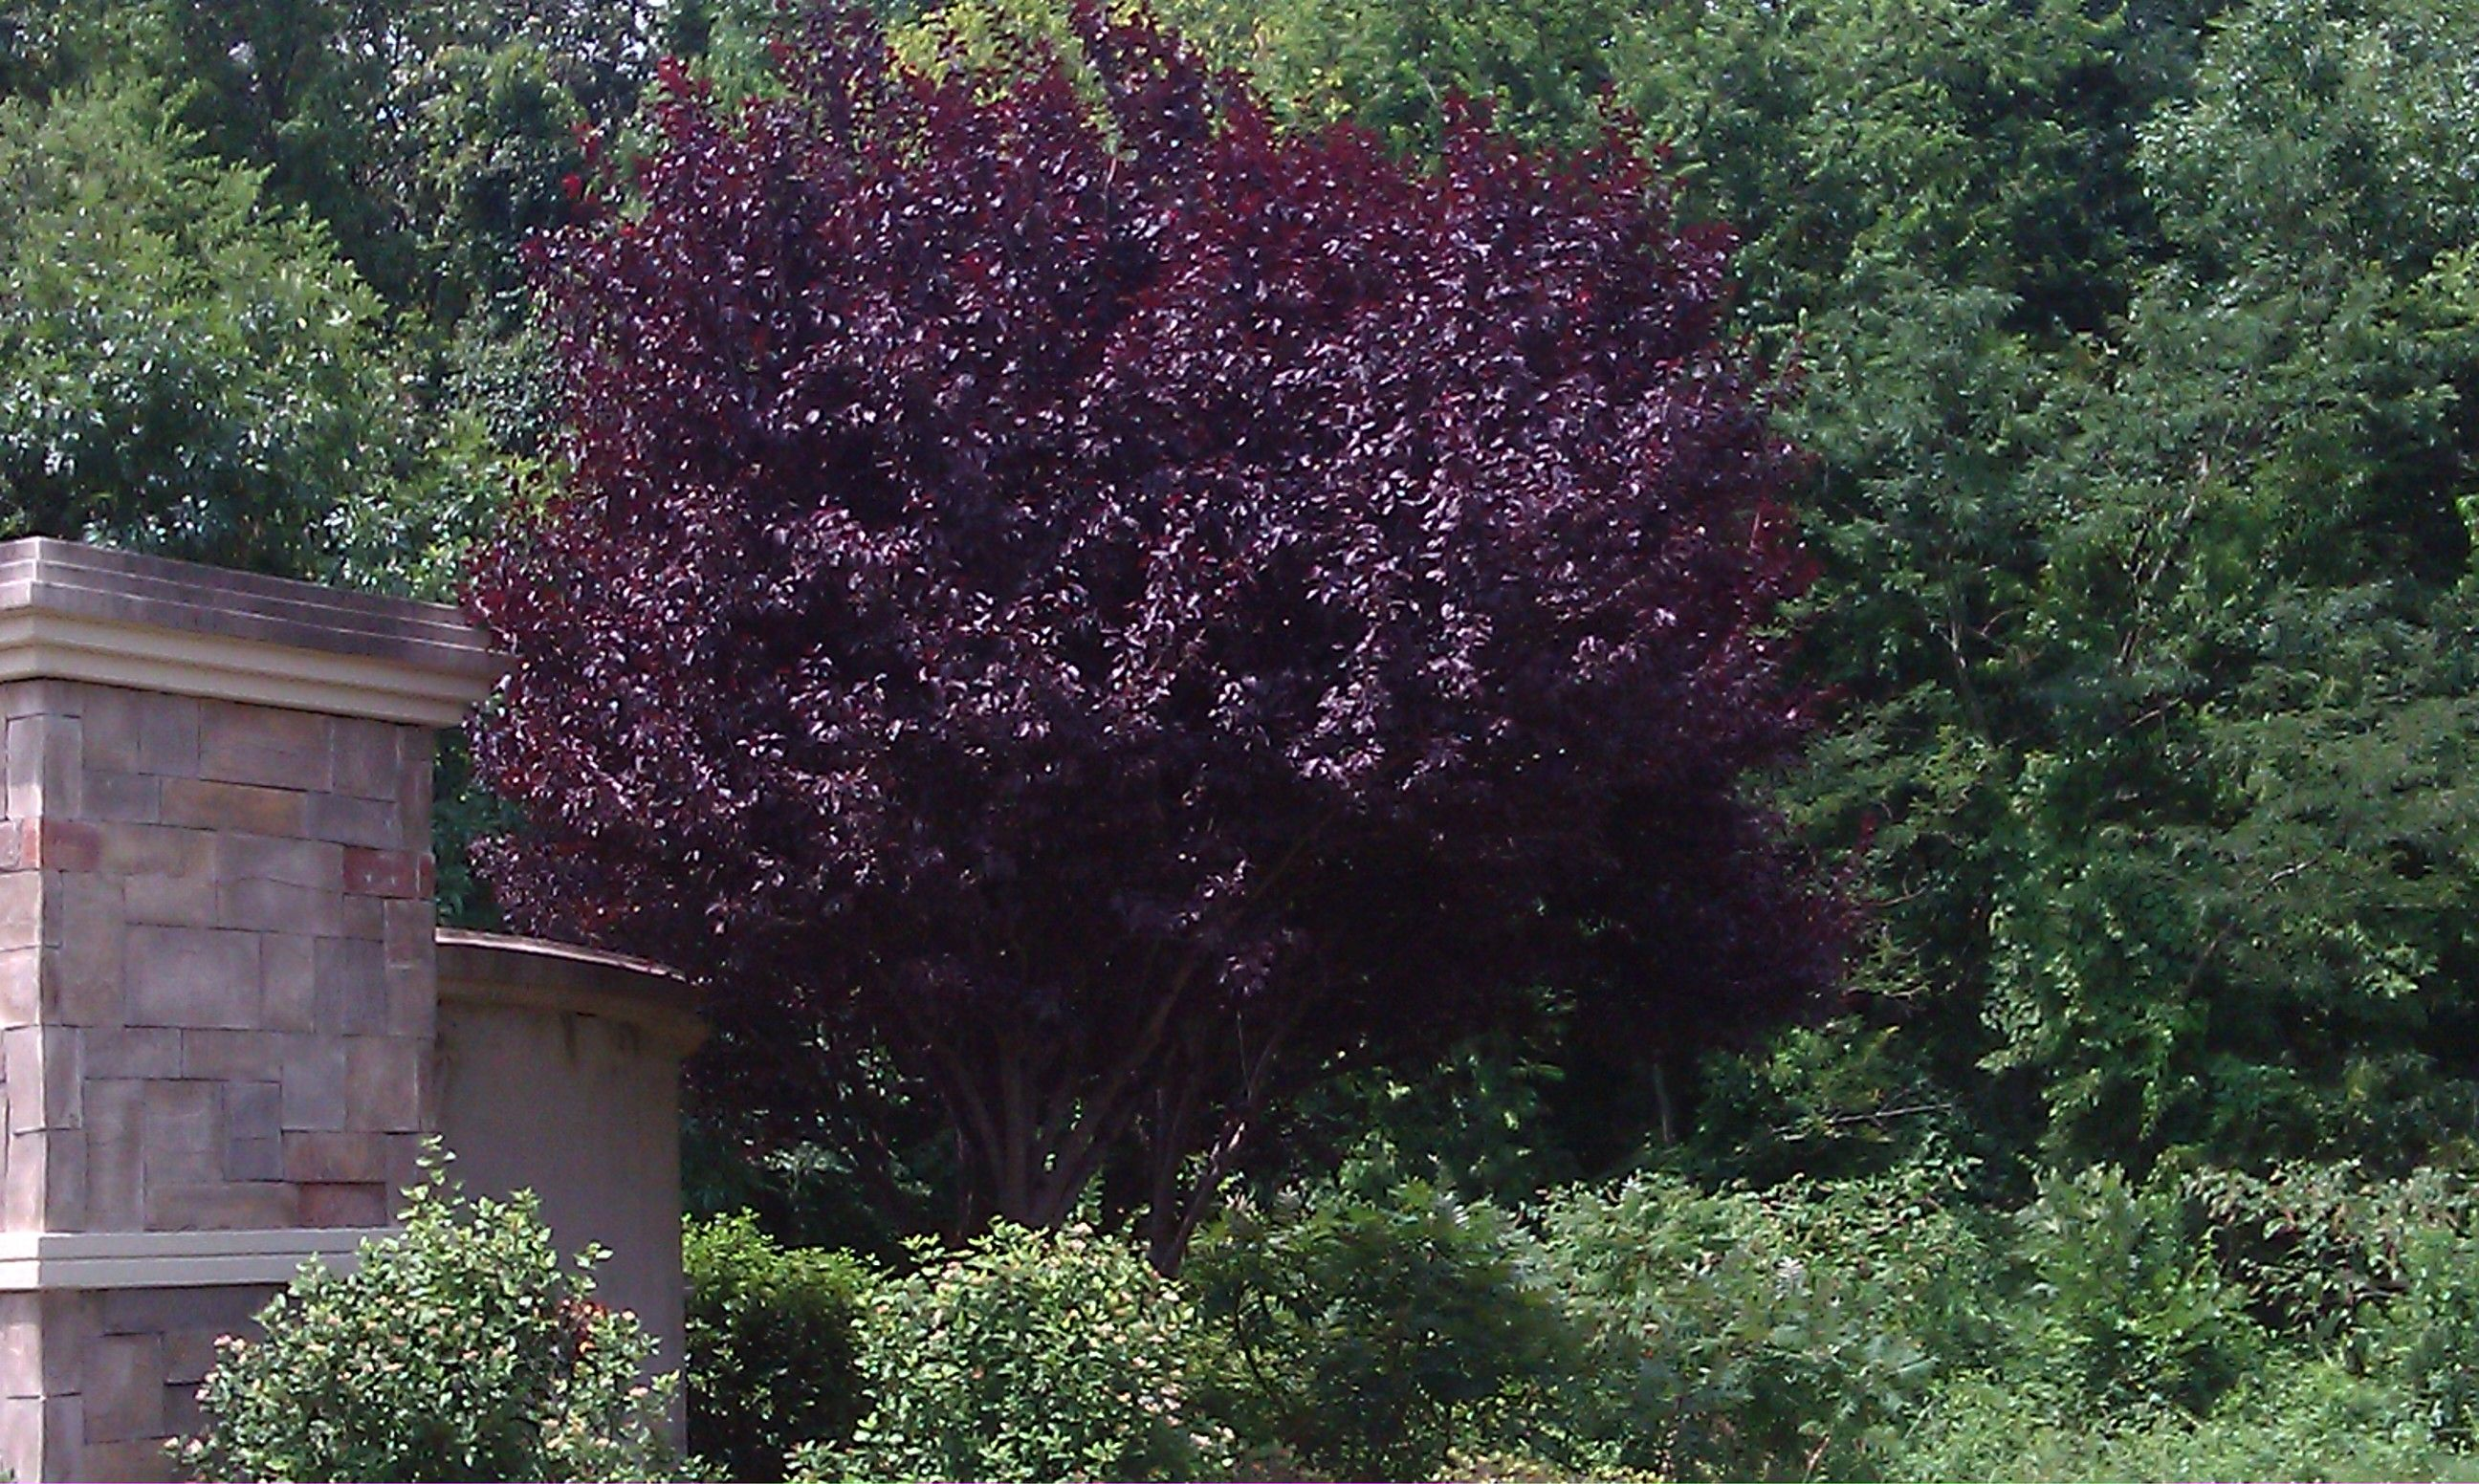 Trees With Burgundy Leaves Share Landscaping Inspiration